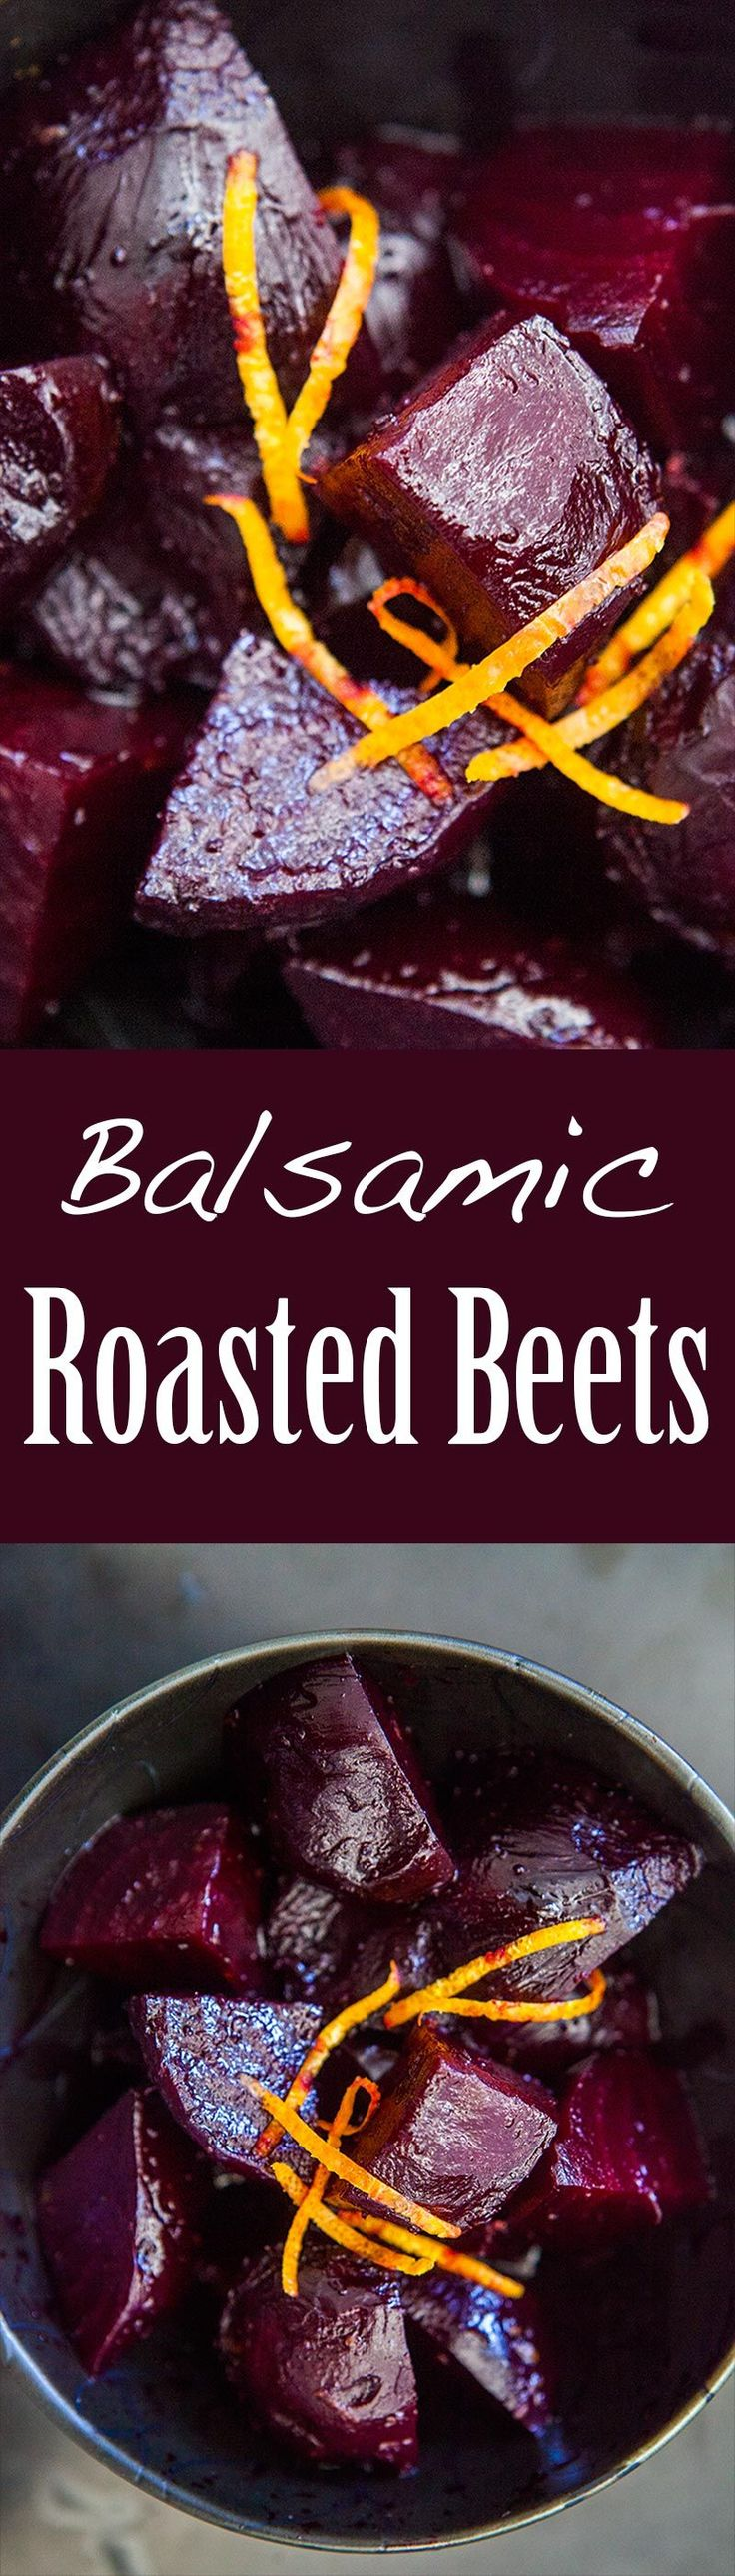 Roasted Beets with Balsamic Glaze ~ Ruby red beets, oven roasted, then tossed with a little orange zest and a balsamic glaze. ~ SimplyRecipes.com